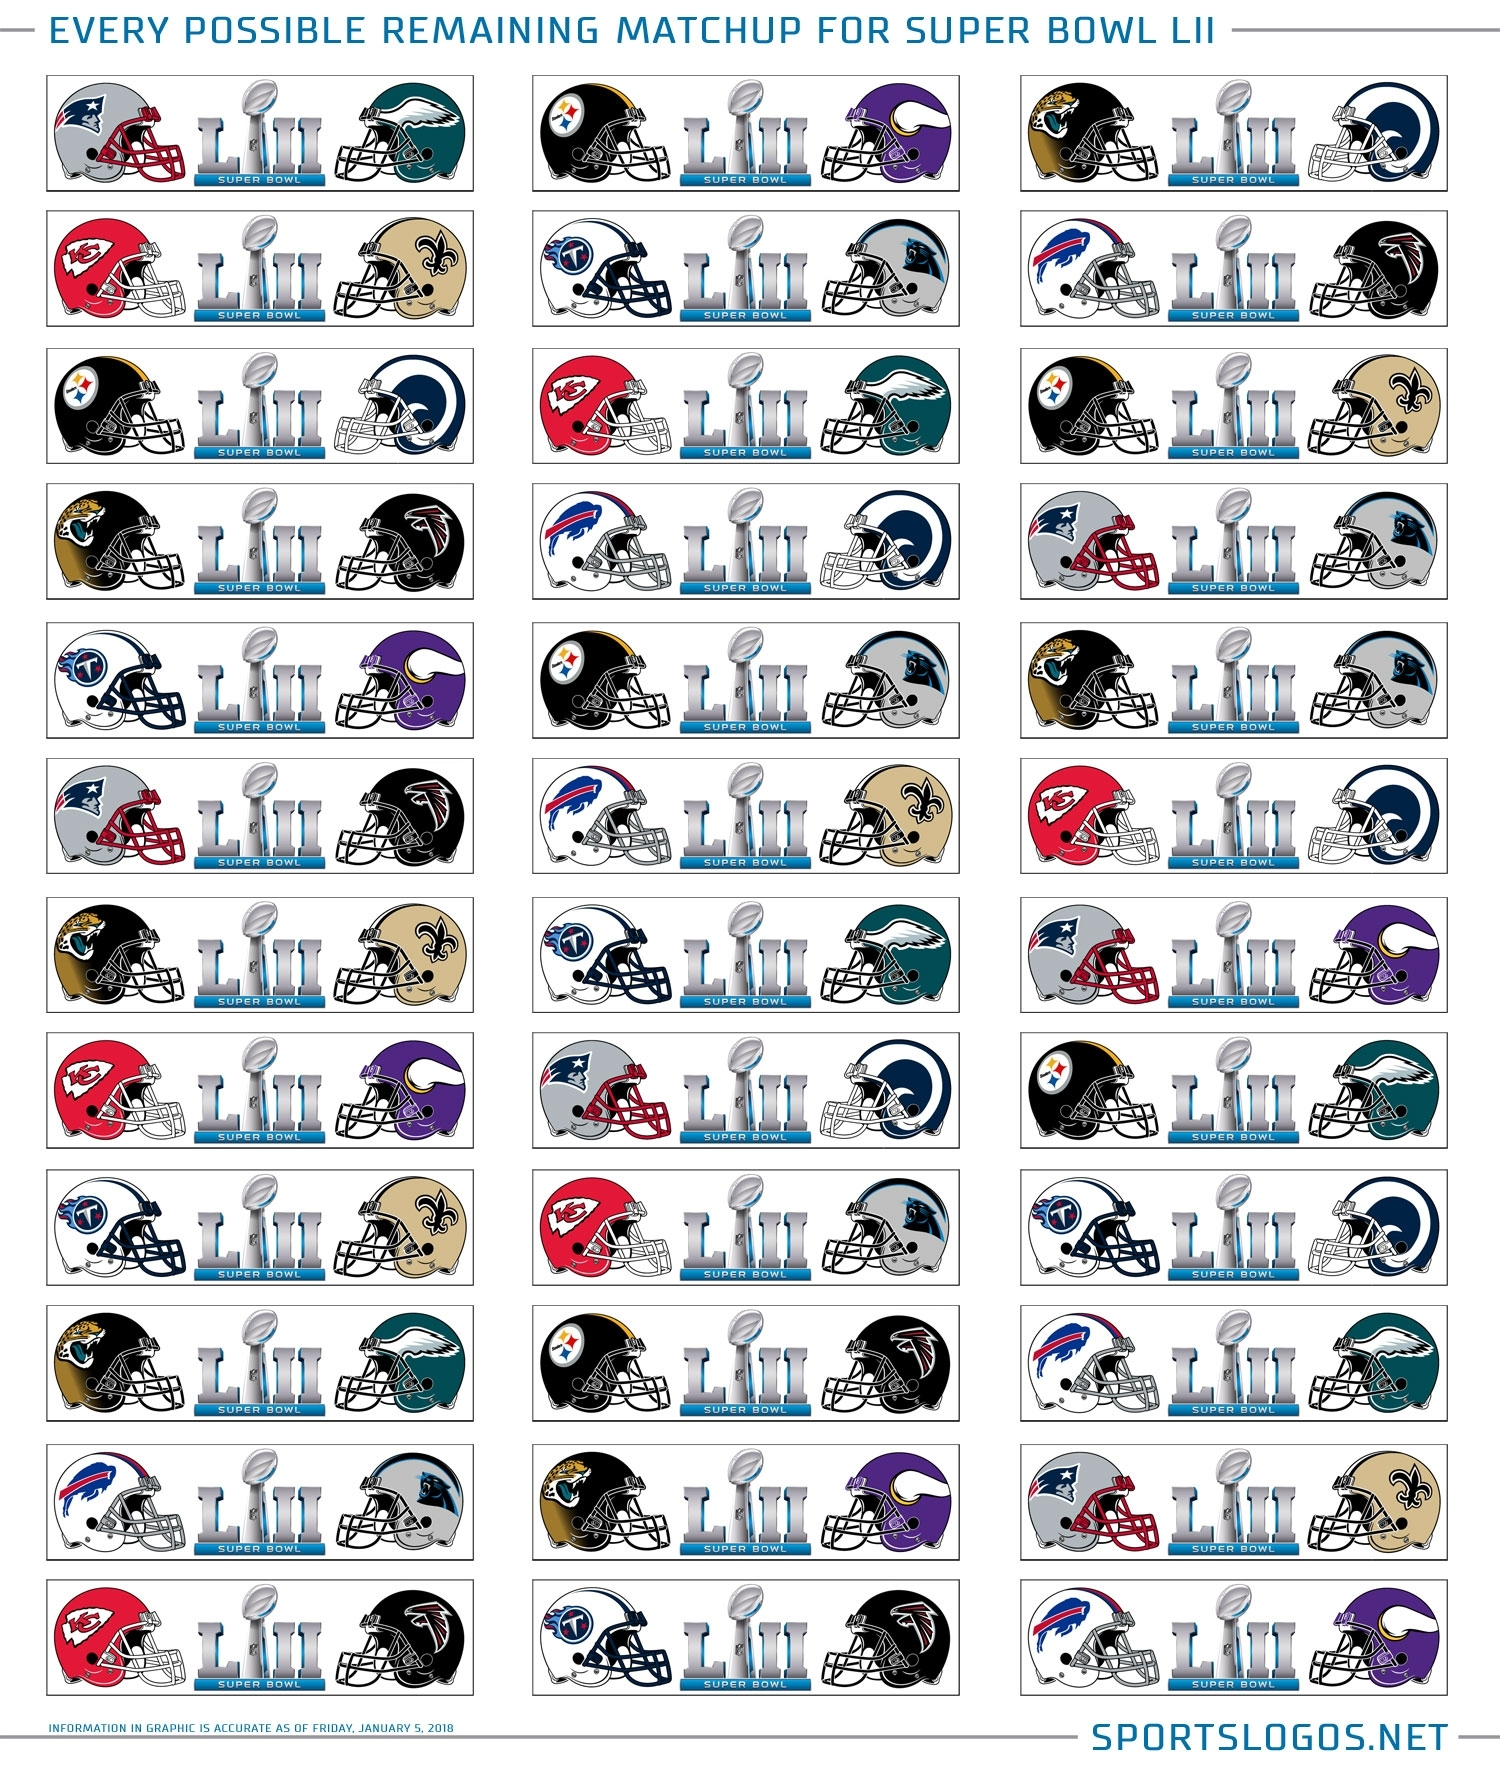 Nfl Playoffs: The Super Bowl Lii Uniform Matchups I Want intended for Super Bowls By Year